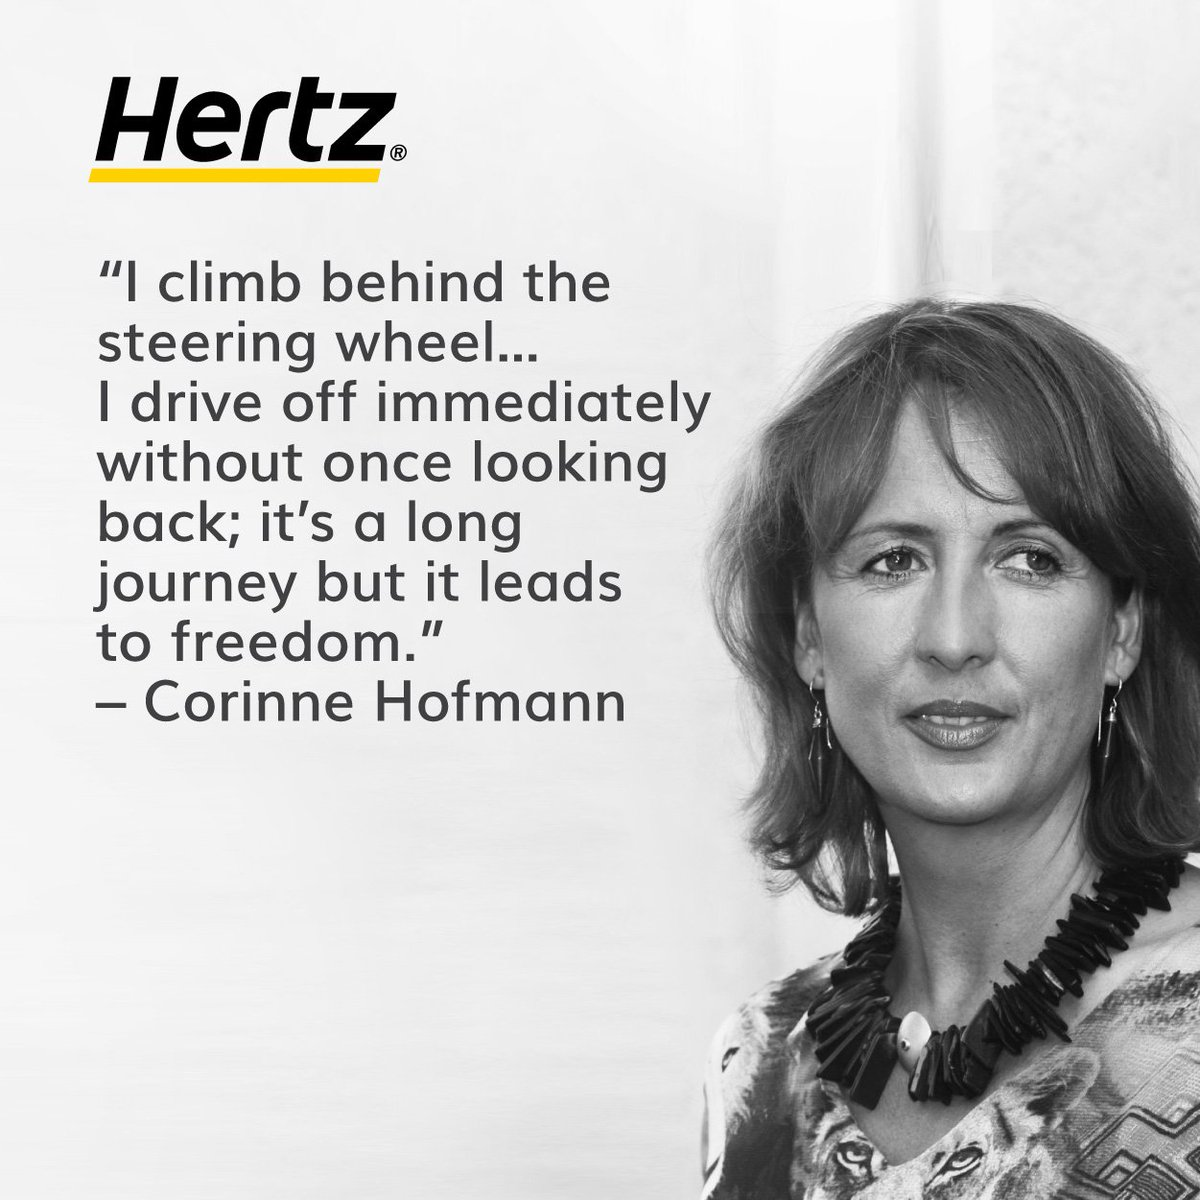 "test Twitter Media - ""I climb behind the steering wheel… I drive off immediately without once looking back; it's a long journey but it leads to freedom."" – Corinne Hofmann  https://t.co/AXf0IIWYgC  #Hertz #Travel #Wanderlust #Quote https://t.co/2Y4JaoWAhb"